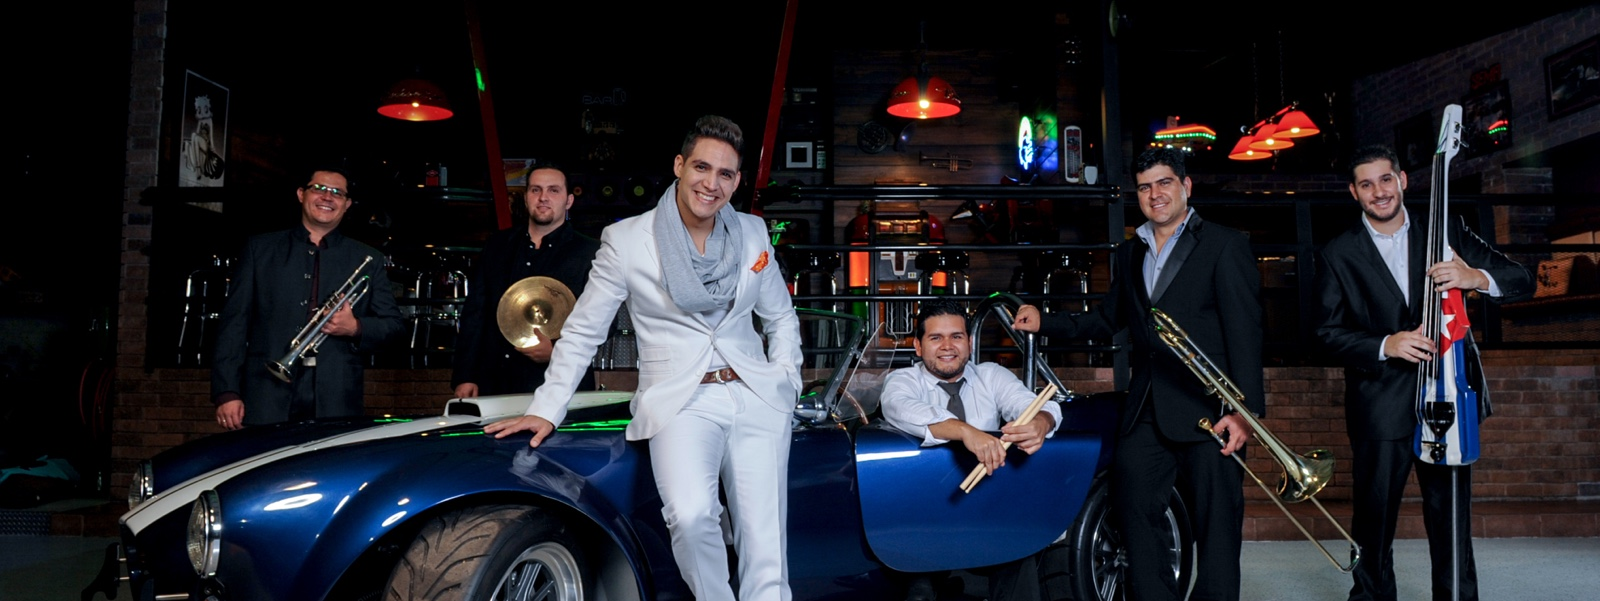 miami nightlife, tucan miami, miami attractions, latin clubs in miami, things to do in miami this weekend, live music, cabaret, things to do in miami, miami events, date night